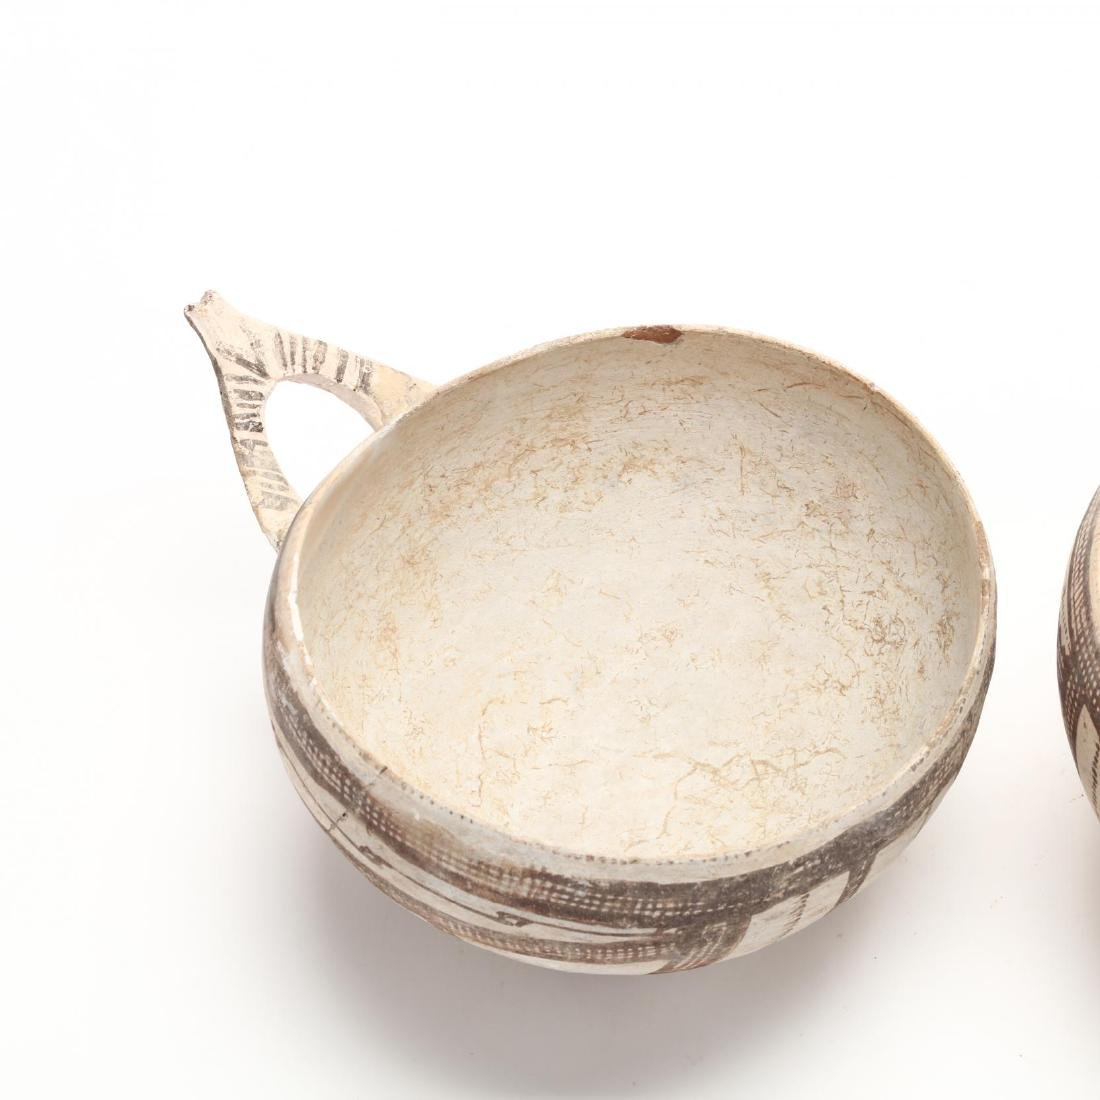 Pair of Cypriot Late Bronze Age White Slip Bowls - 4